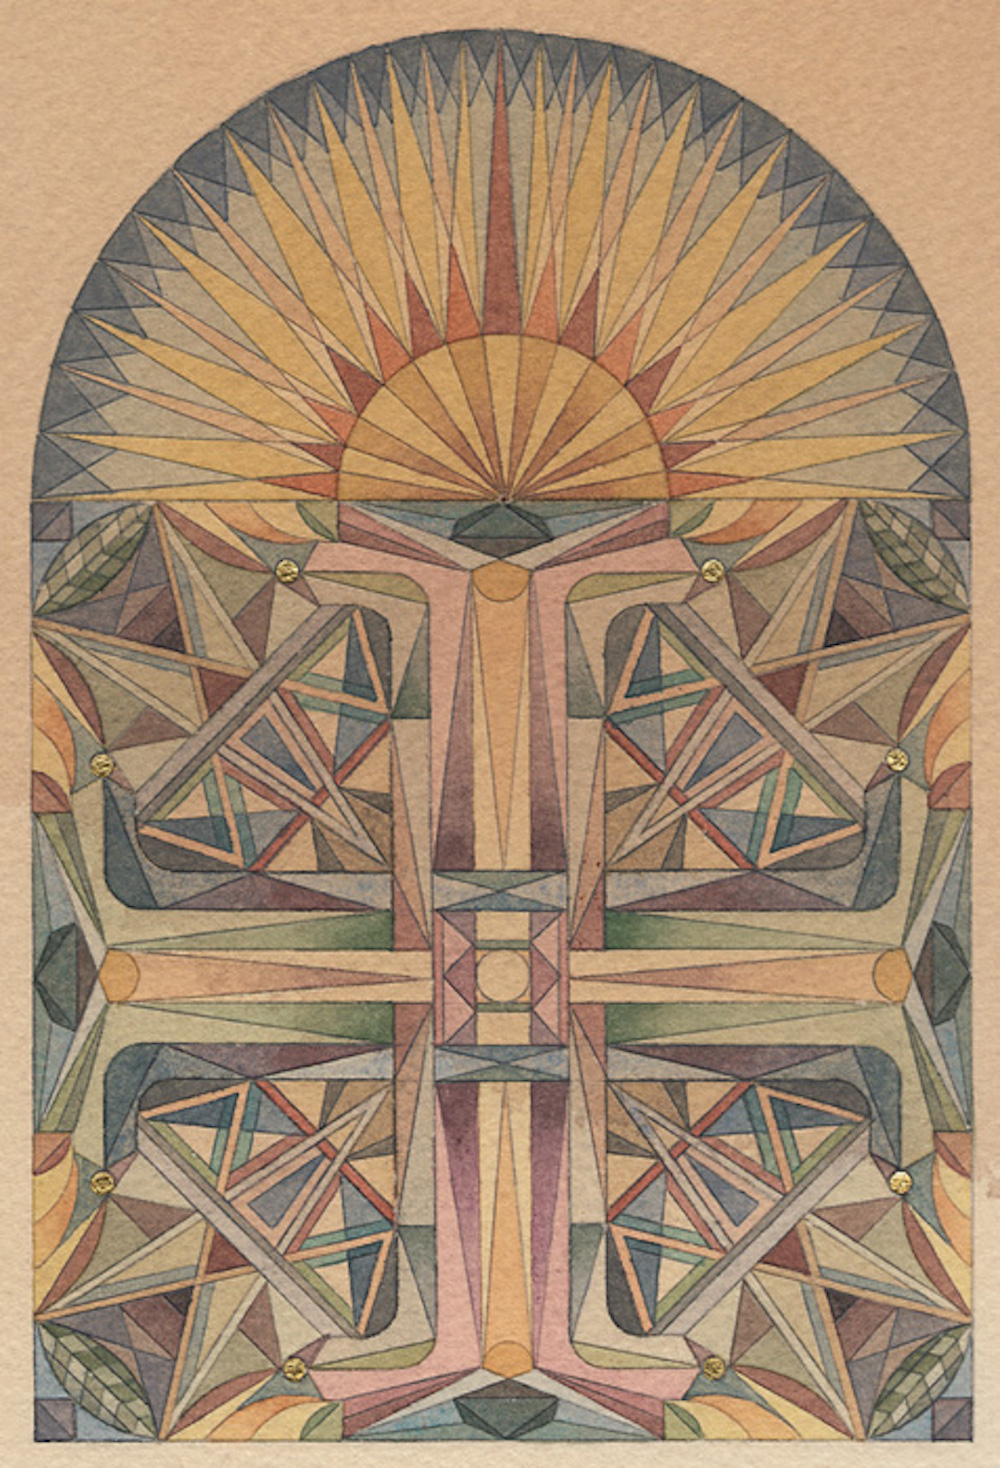 Meditation 30, 2011, watercolour and gold leaf on paper, 24 x 18 cm